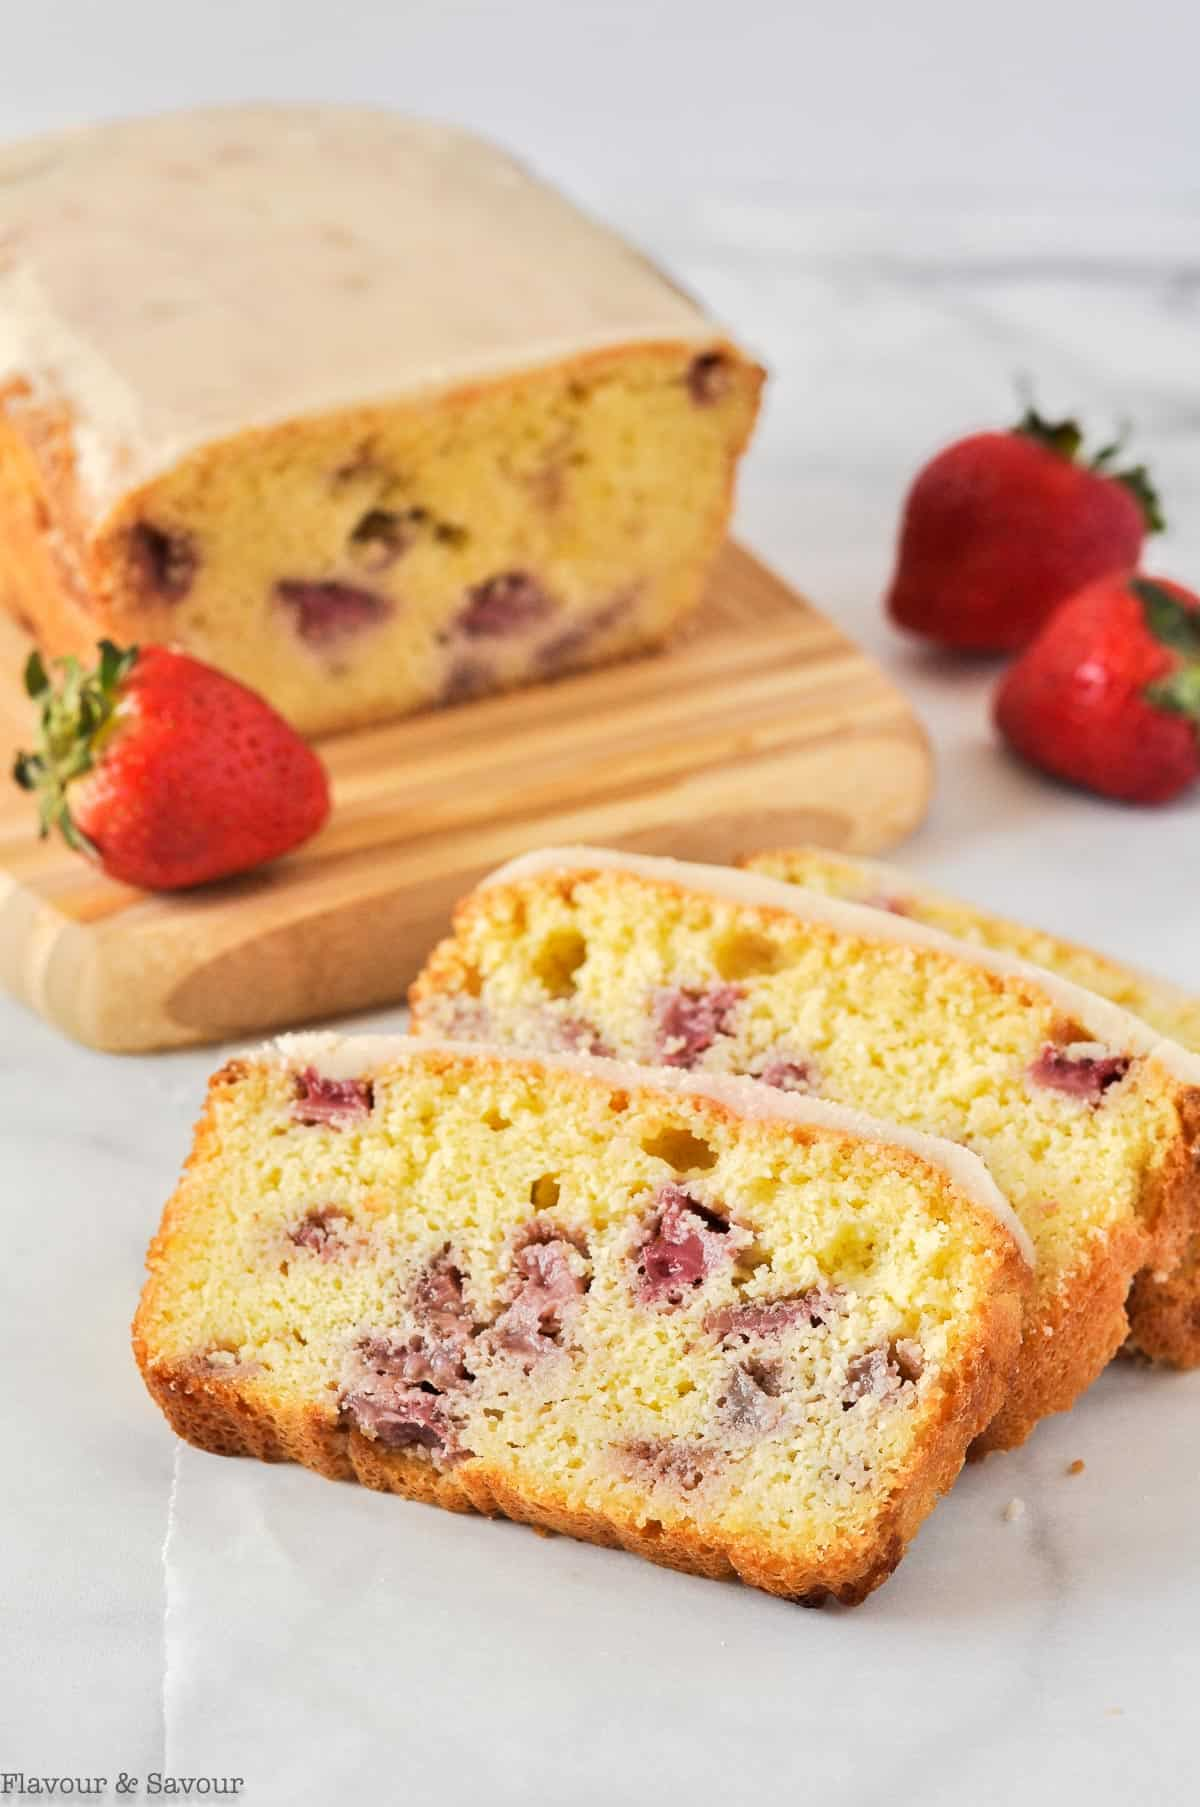 Strawberry Lemon Loaf sliced with fresh strawberries.